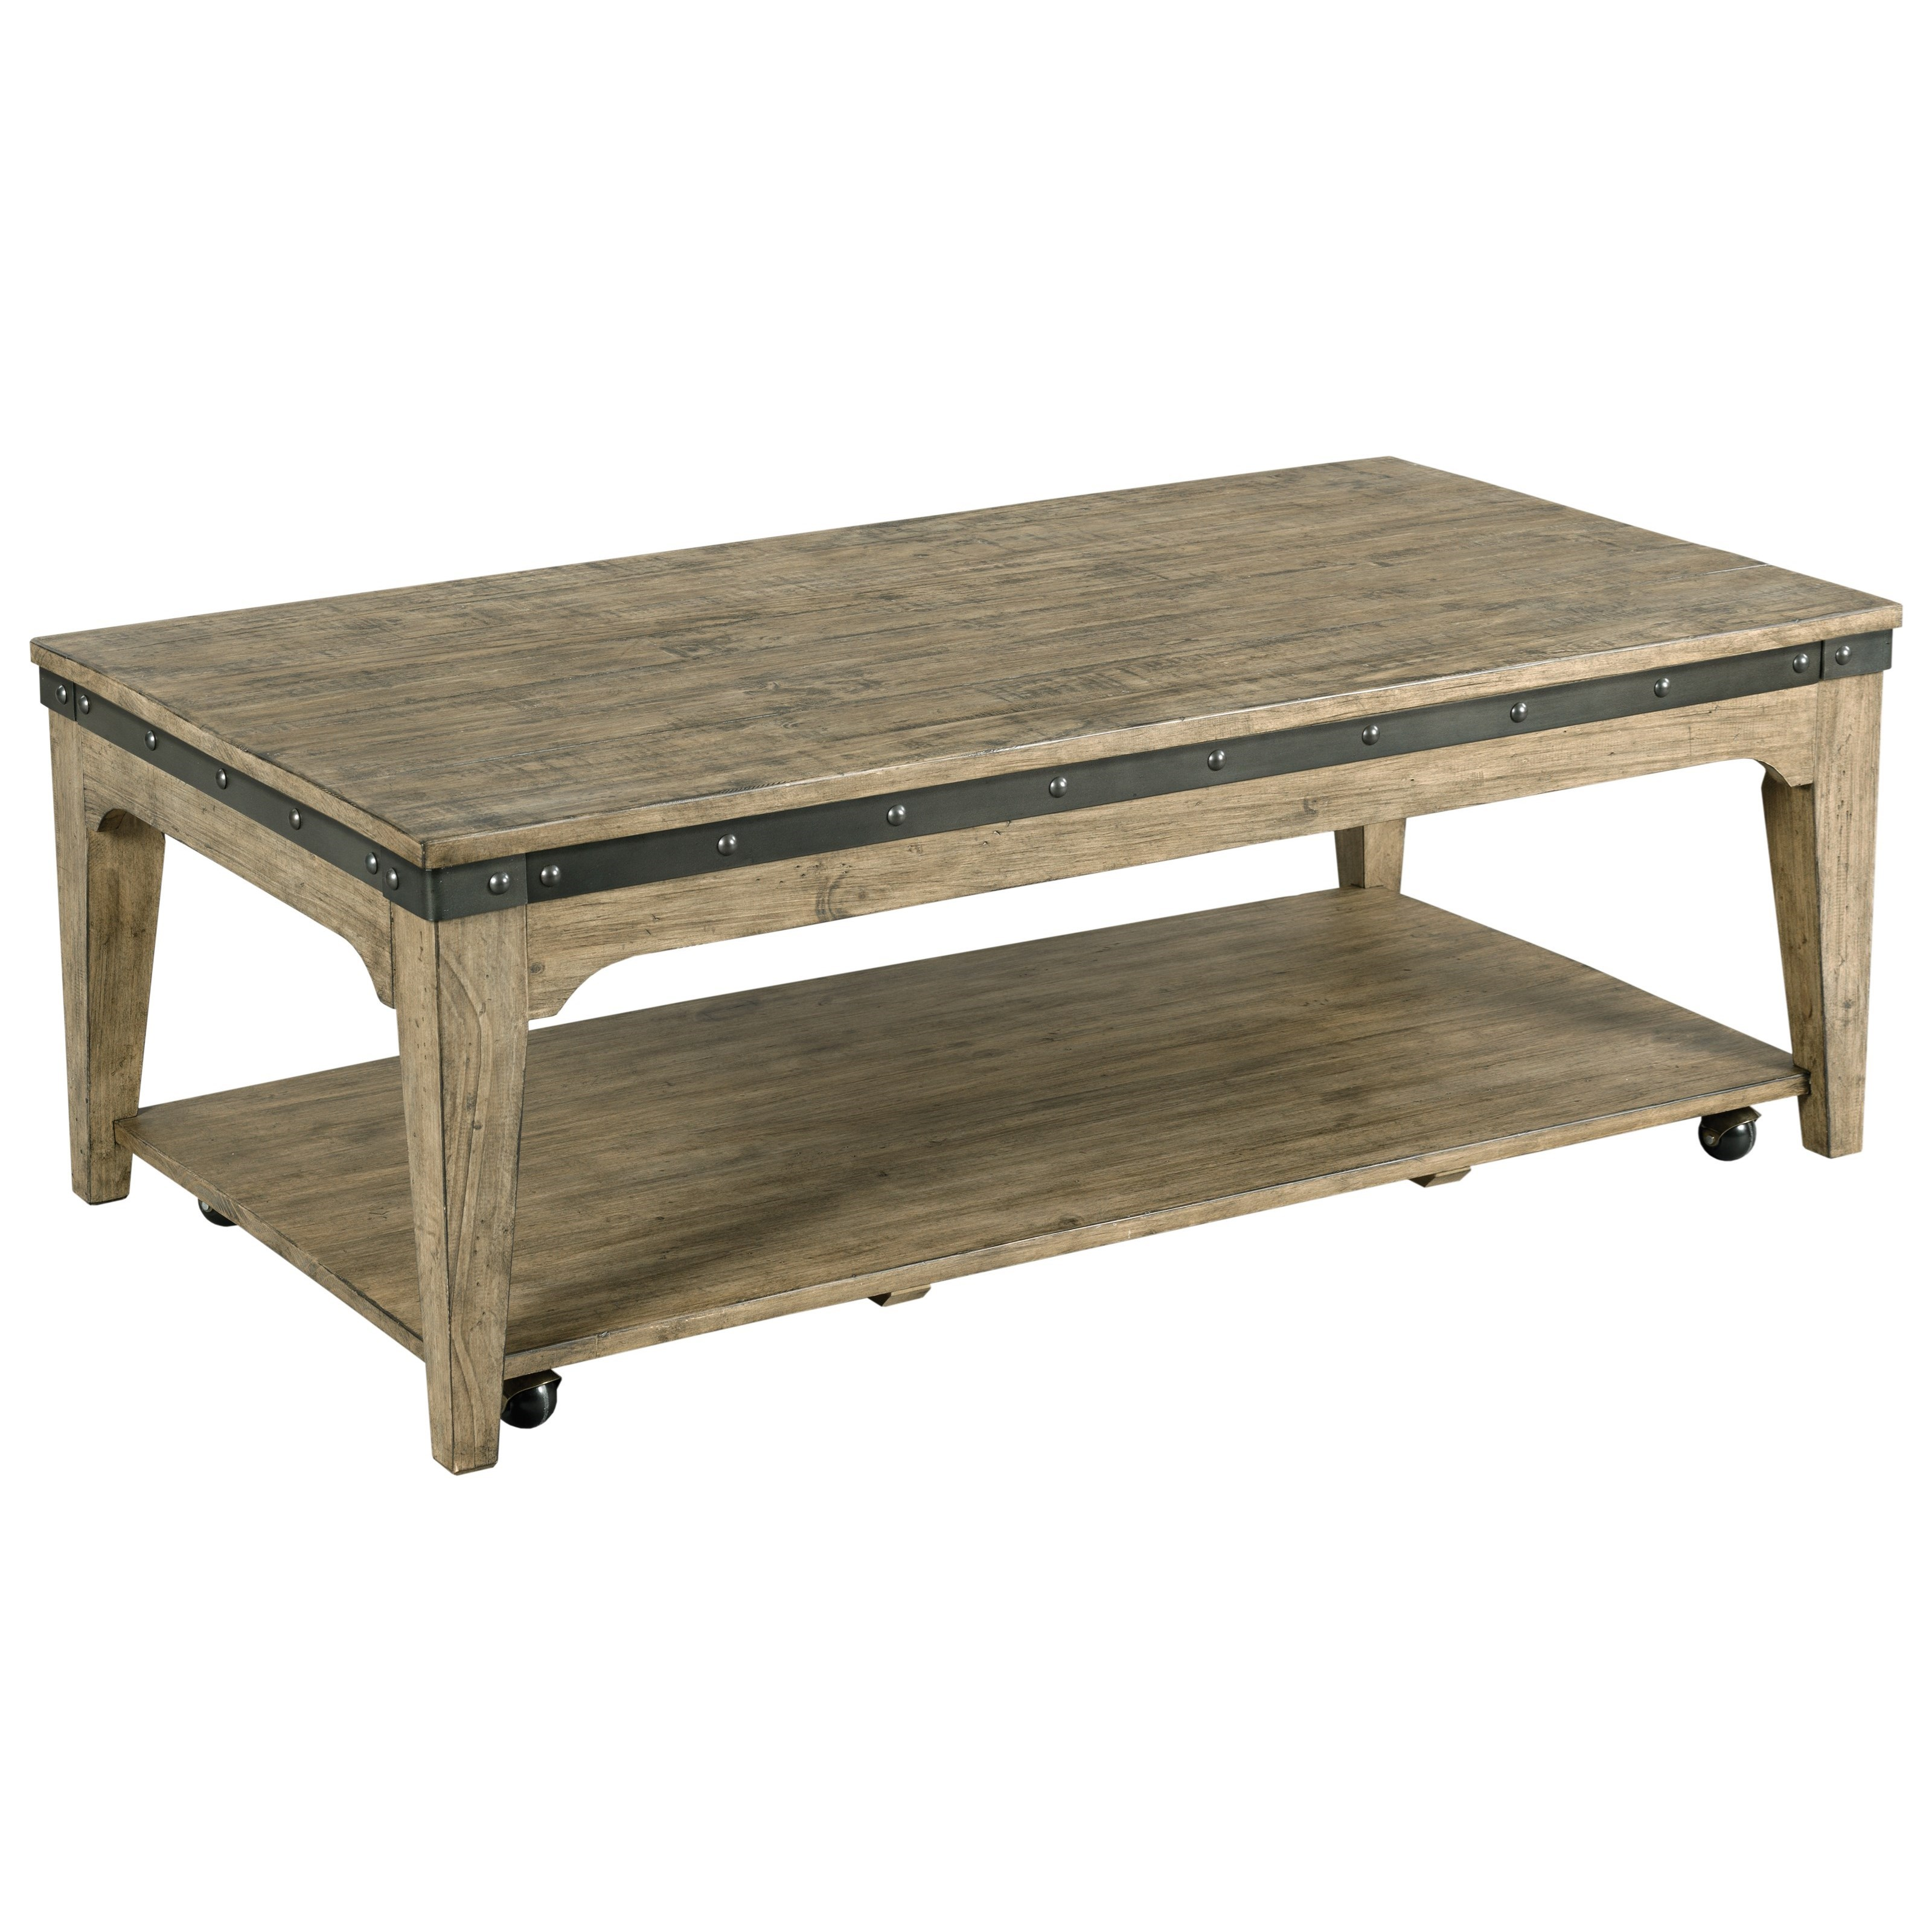 Plank Road Artisans Rectangular Cocktail Table          by Kincaid Furniture at Northeast Factory Direct